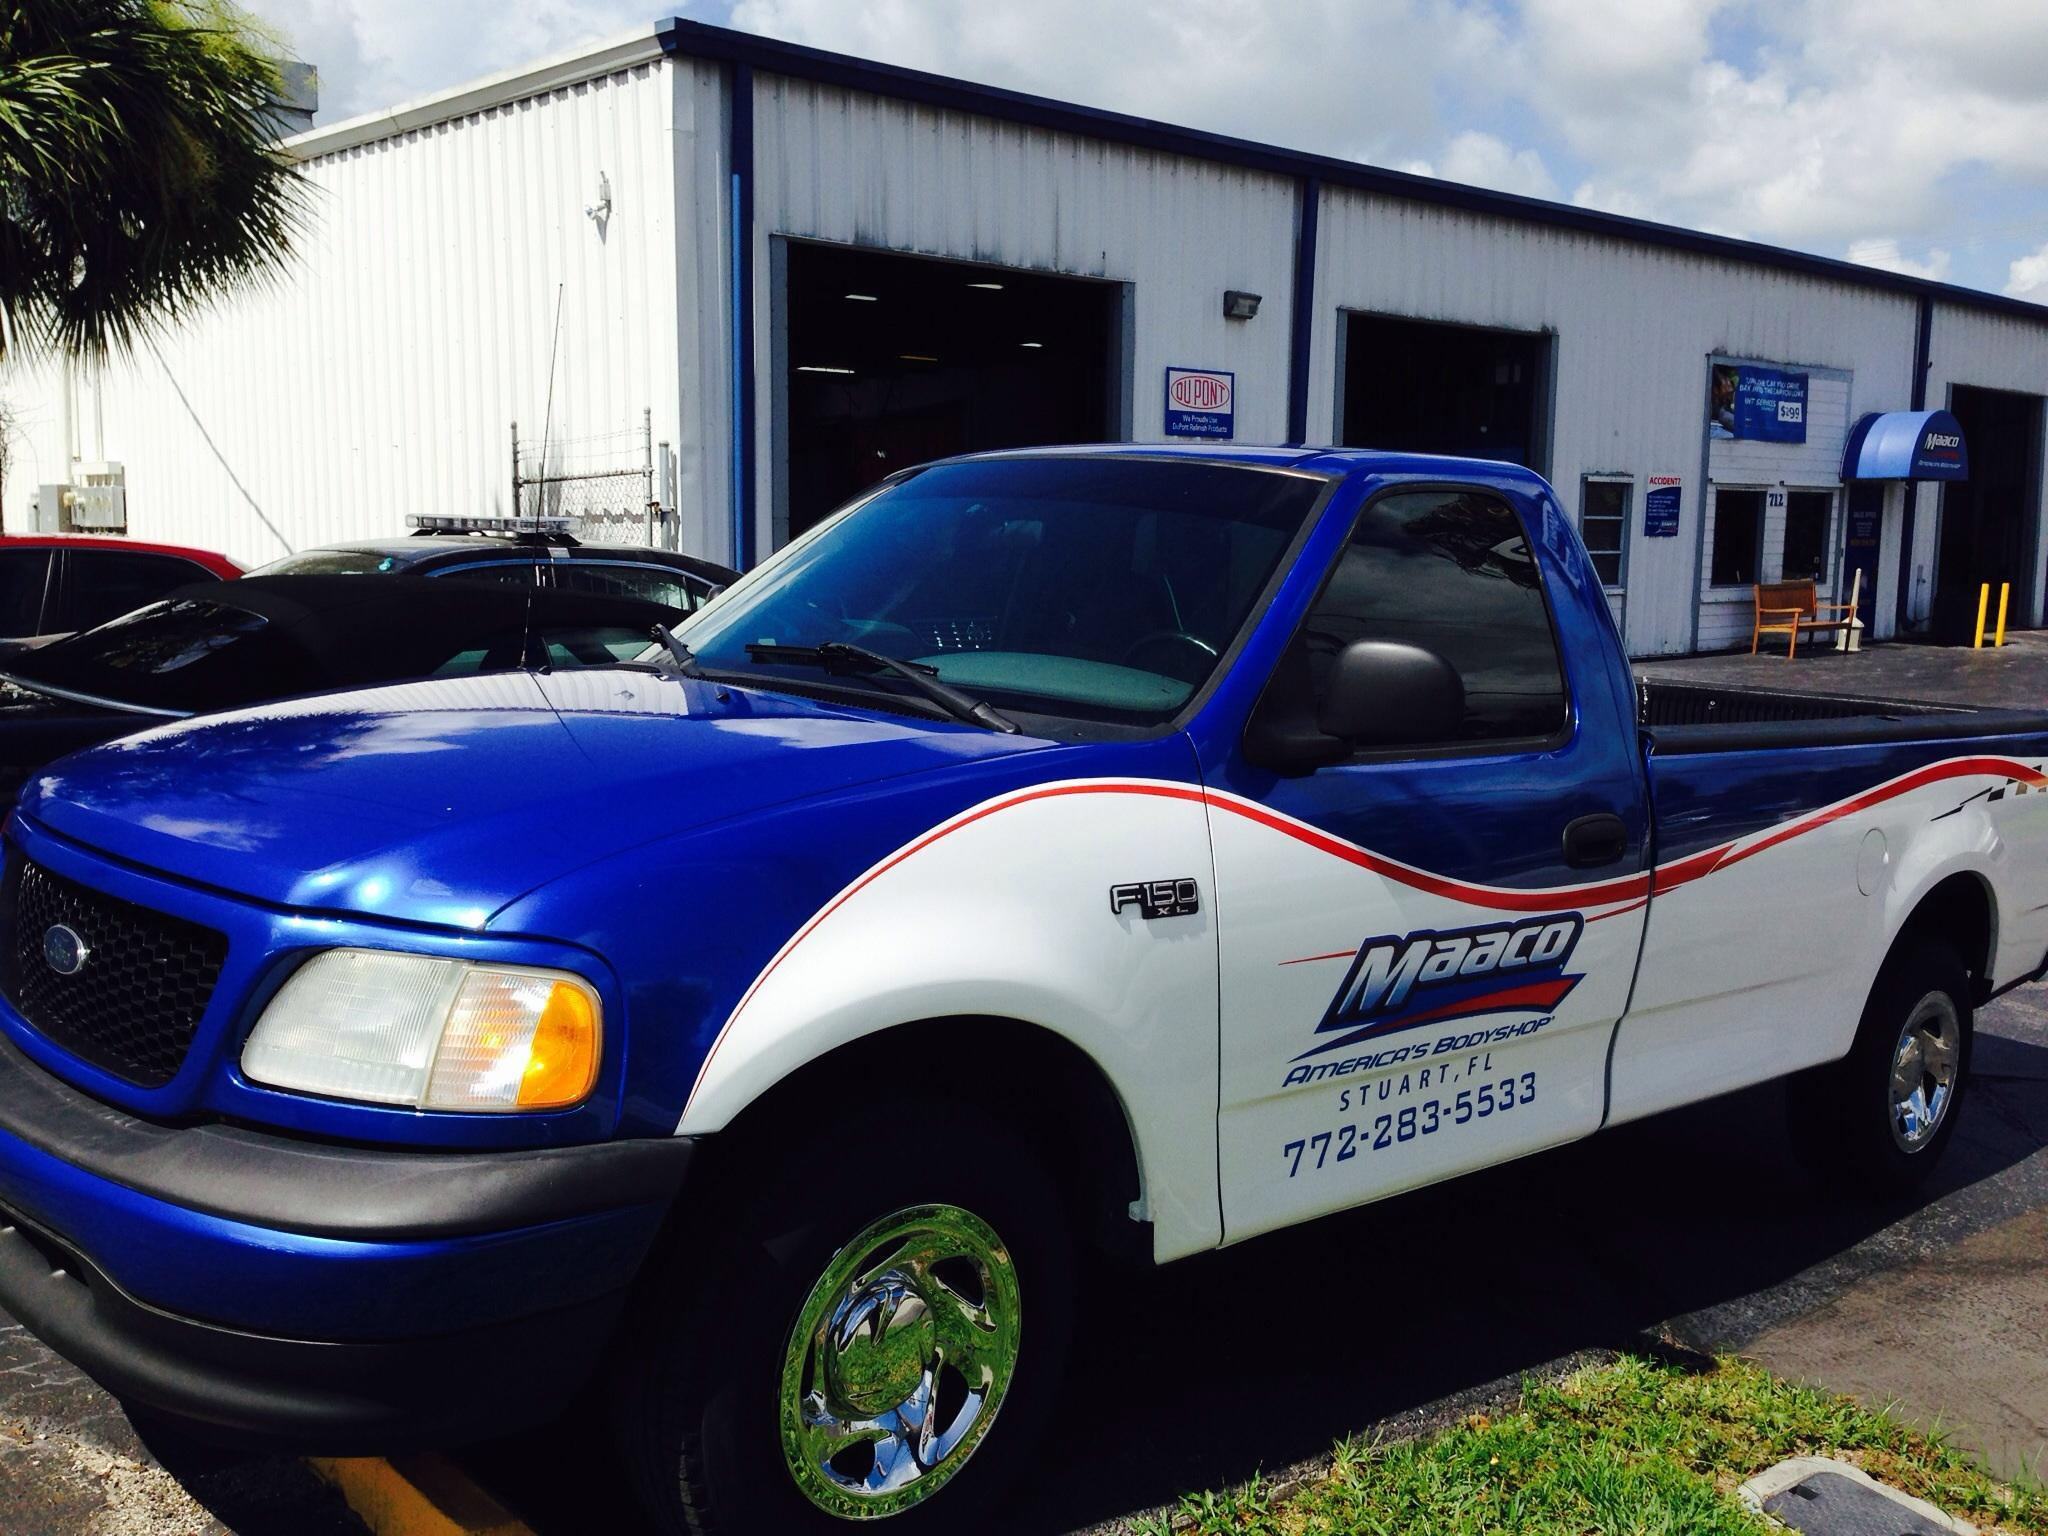 Maaco collision repair auto painting in stuart fl for Maaco paint and body